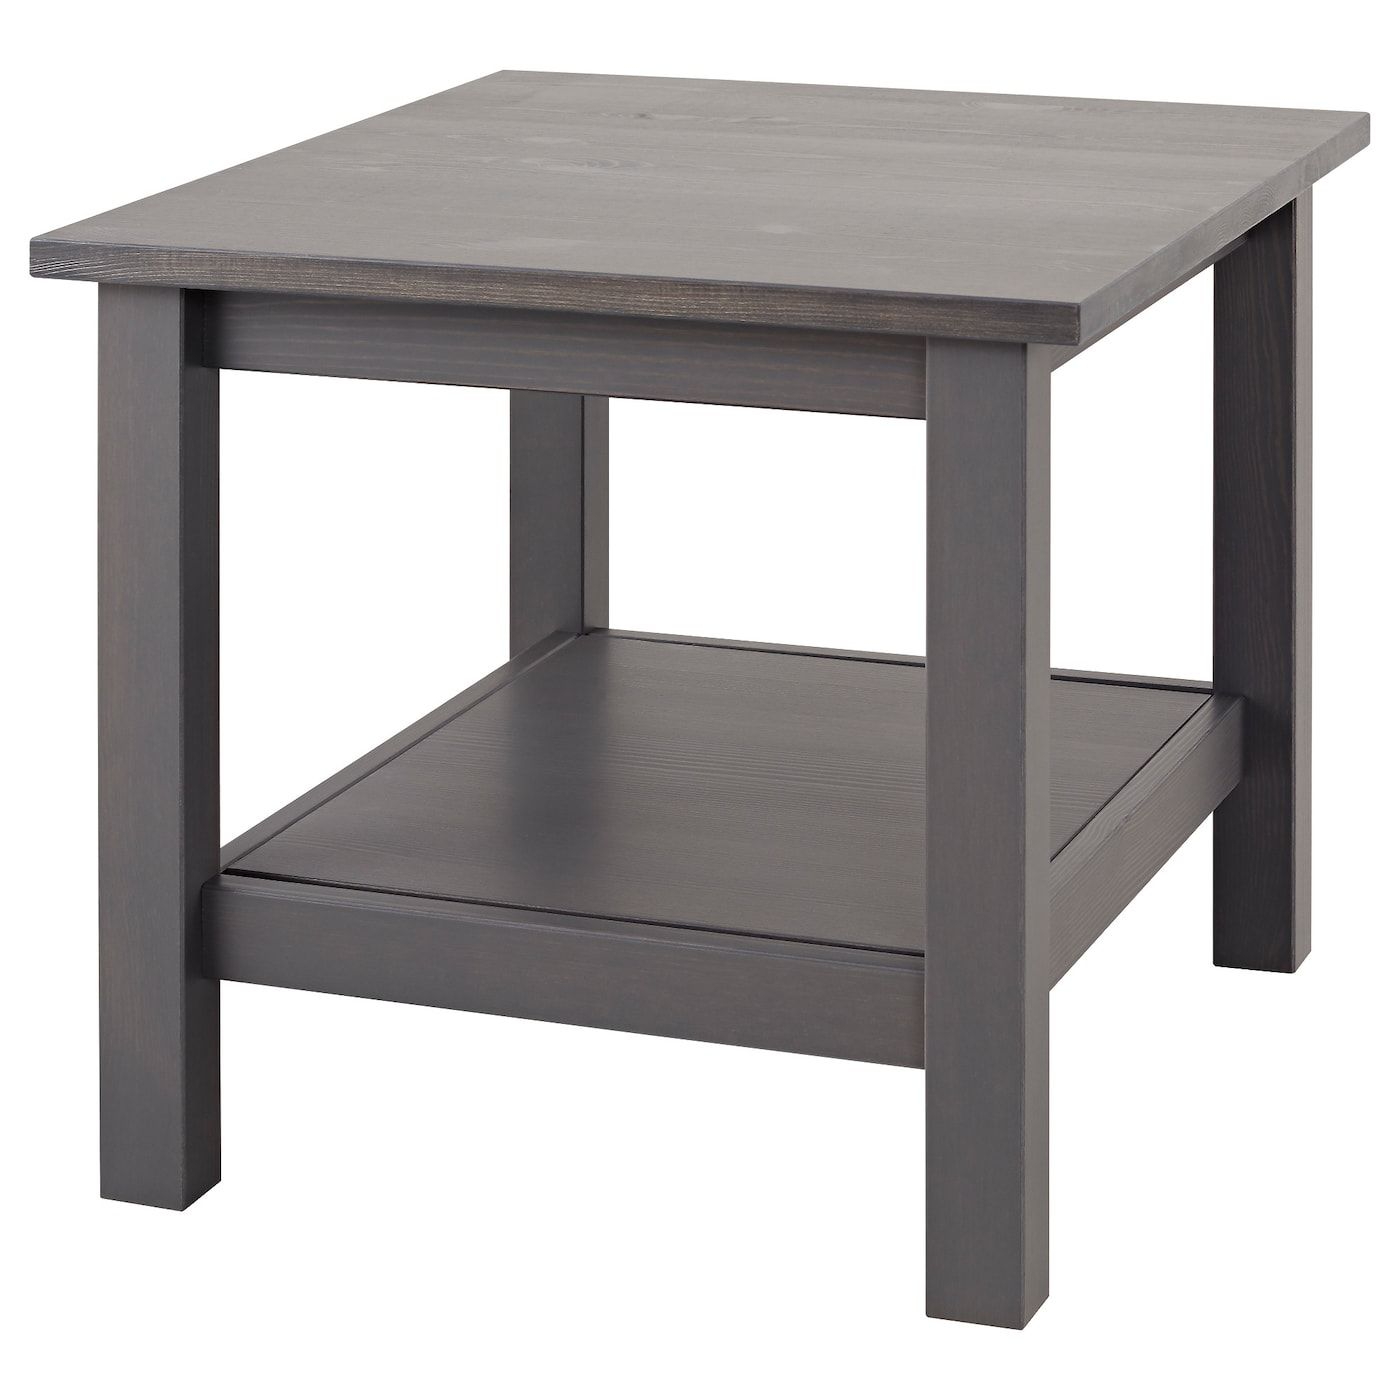 Home Furniture Store Modern Furnishings Decor At Home Furniture Store Hemnes Grey Side Table [ 1400 x 1400 Pixel ]